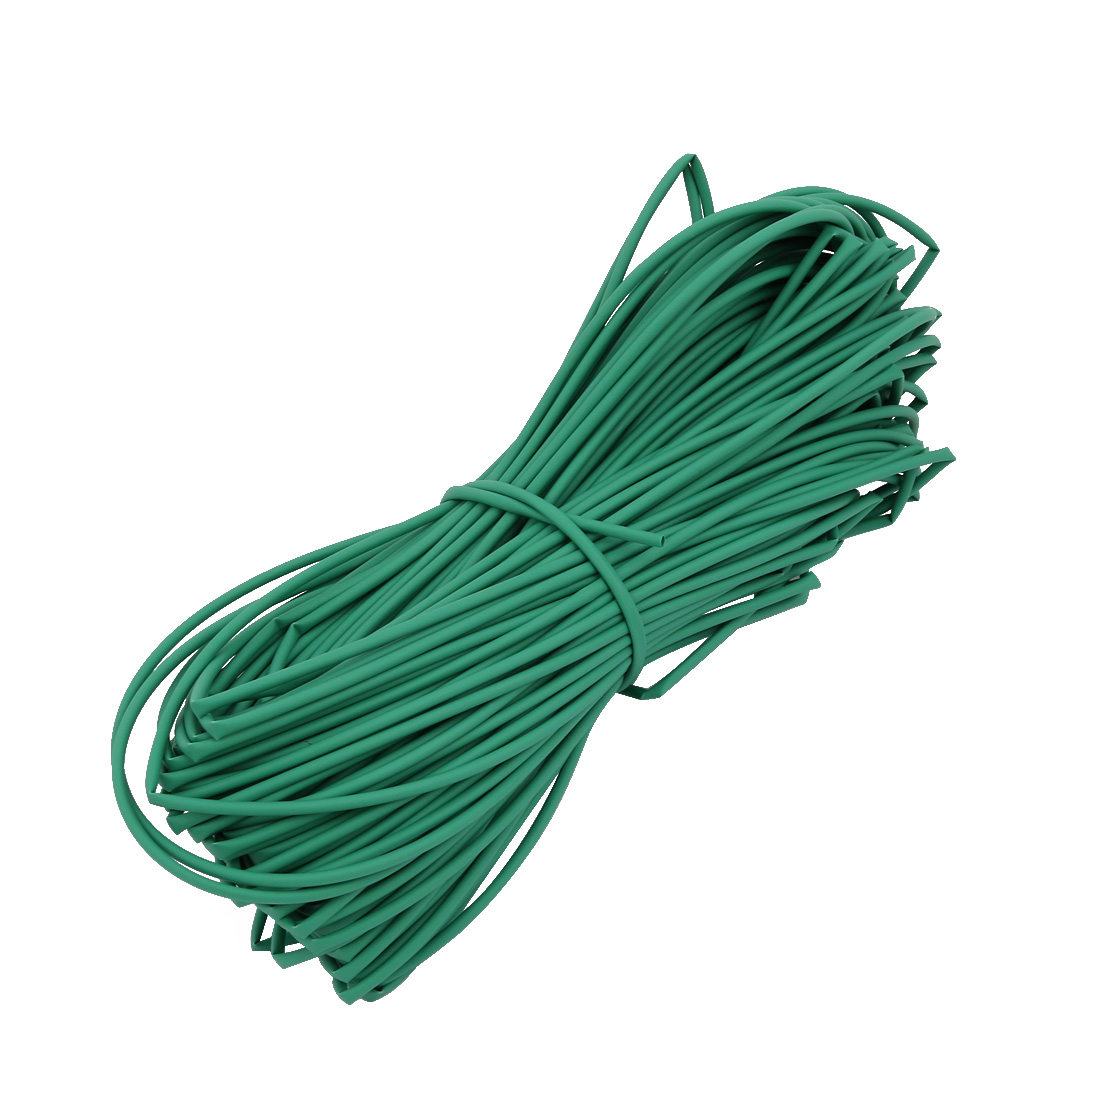 50M 0.06in Inner Dia Polyolefin Flame Retardant Tube Green for Wire Repairing